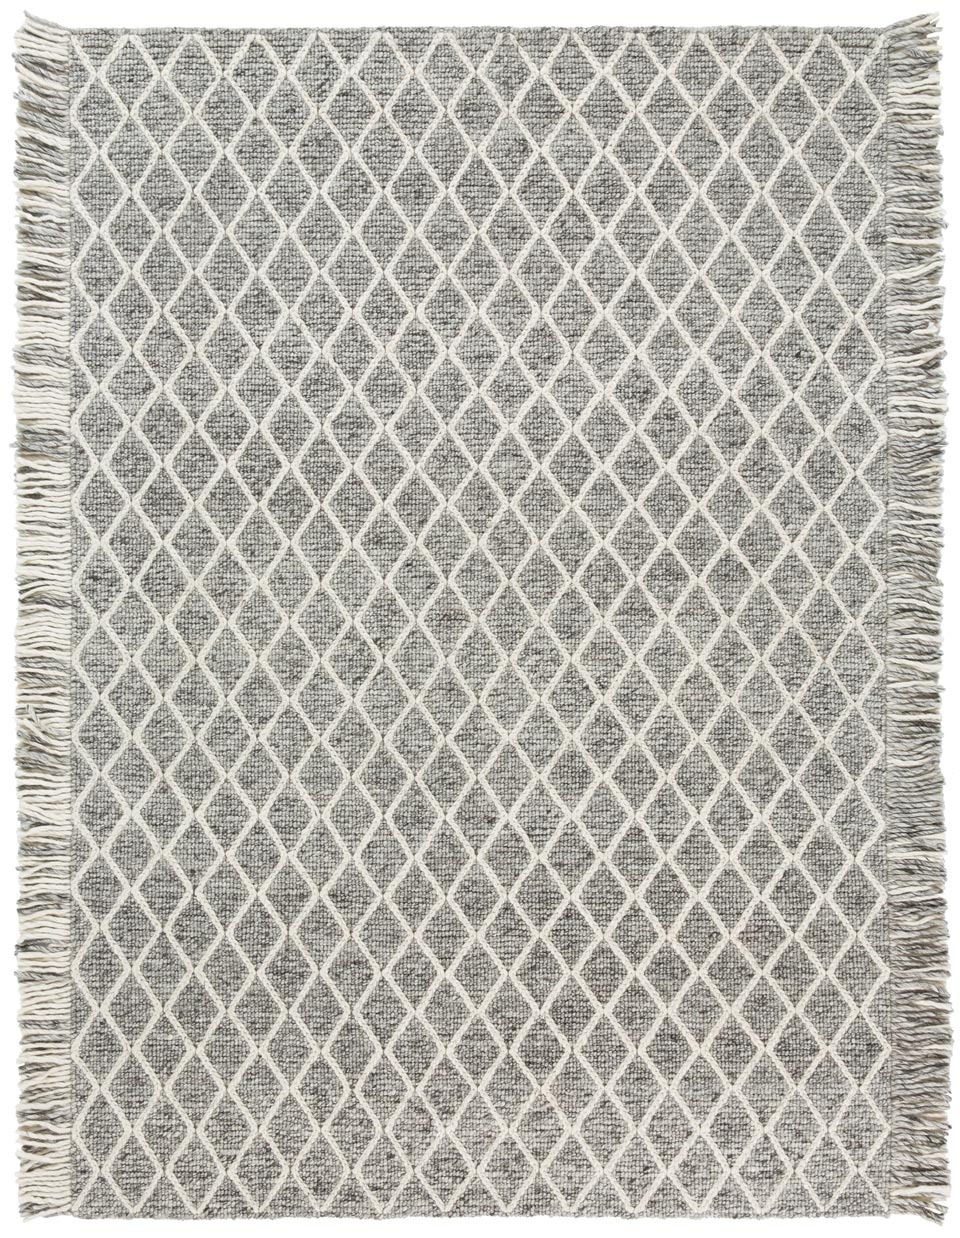 Tapis transform gris avec franges ligne pure tapis contemporains fabriqu s la main r f Beaux tapis contemporains